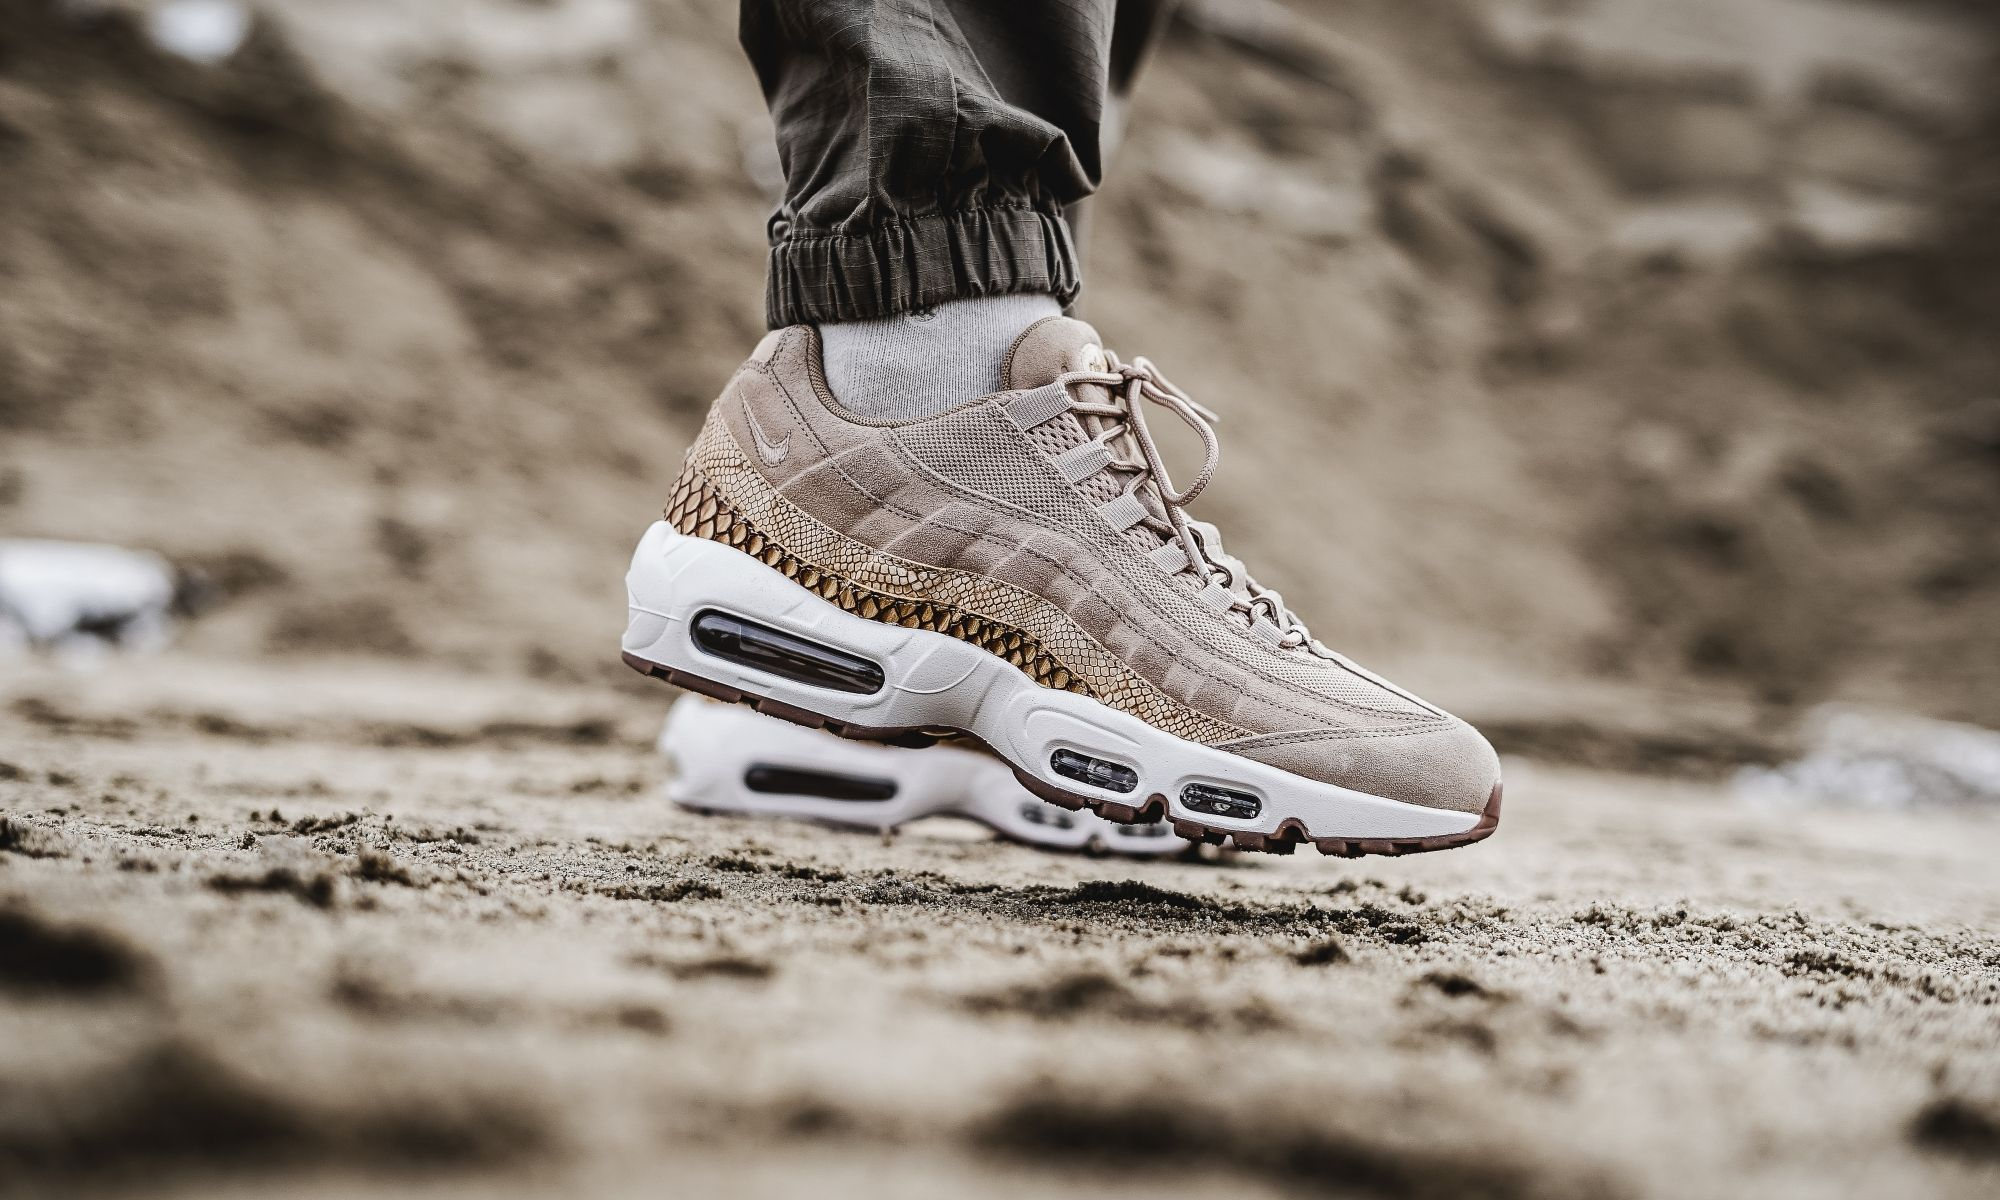 Nike Air Max 95 Premium SE Crocodile Pack - 924478-201  ddfff0b70